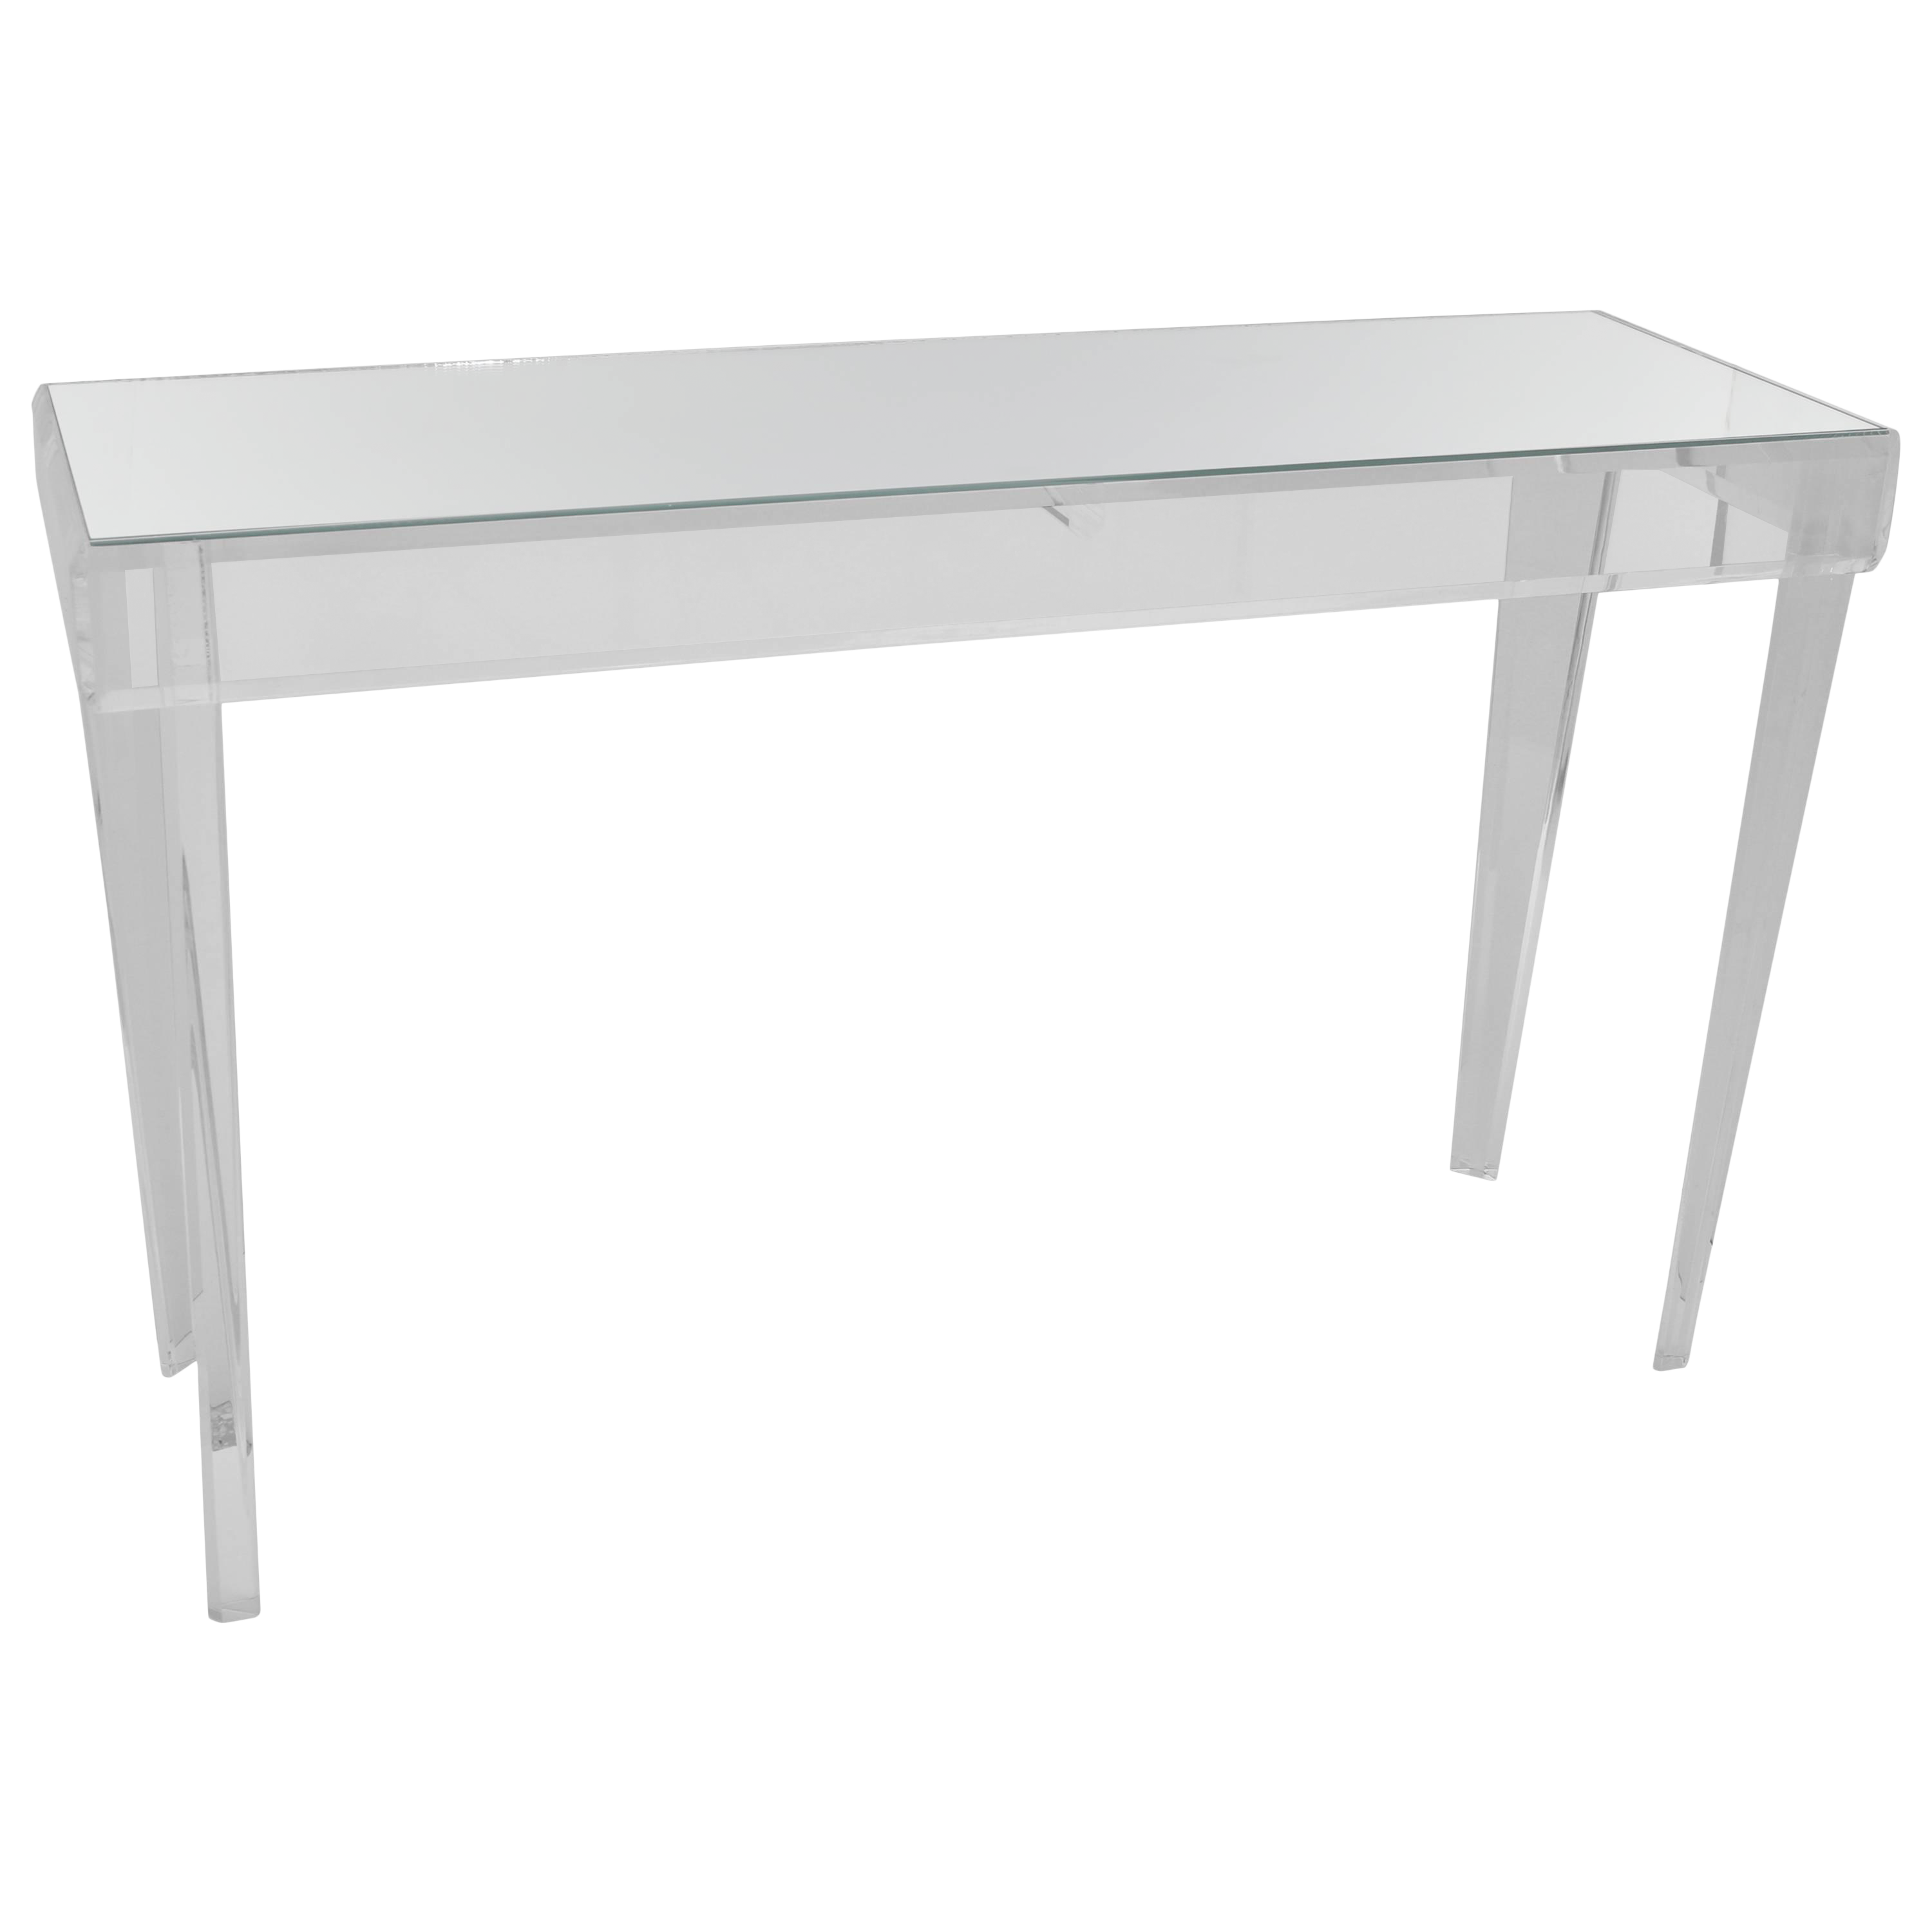 Luxury Lucite U0026 Glass Rectangular Console Table   Bespoke Can Custom Make  Different Sizes | DECASO